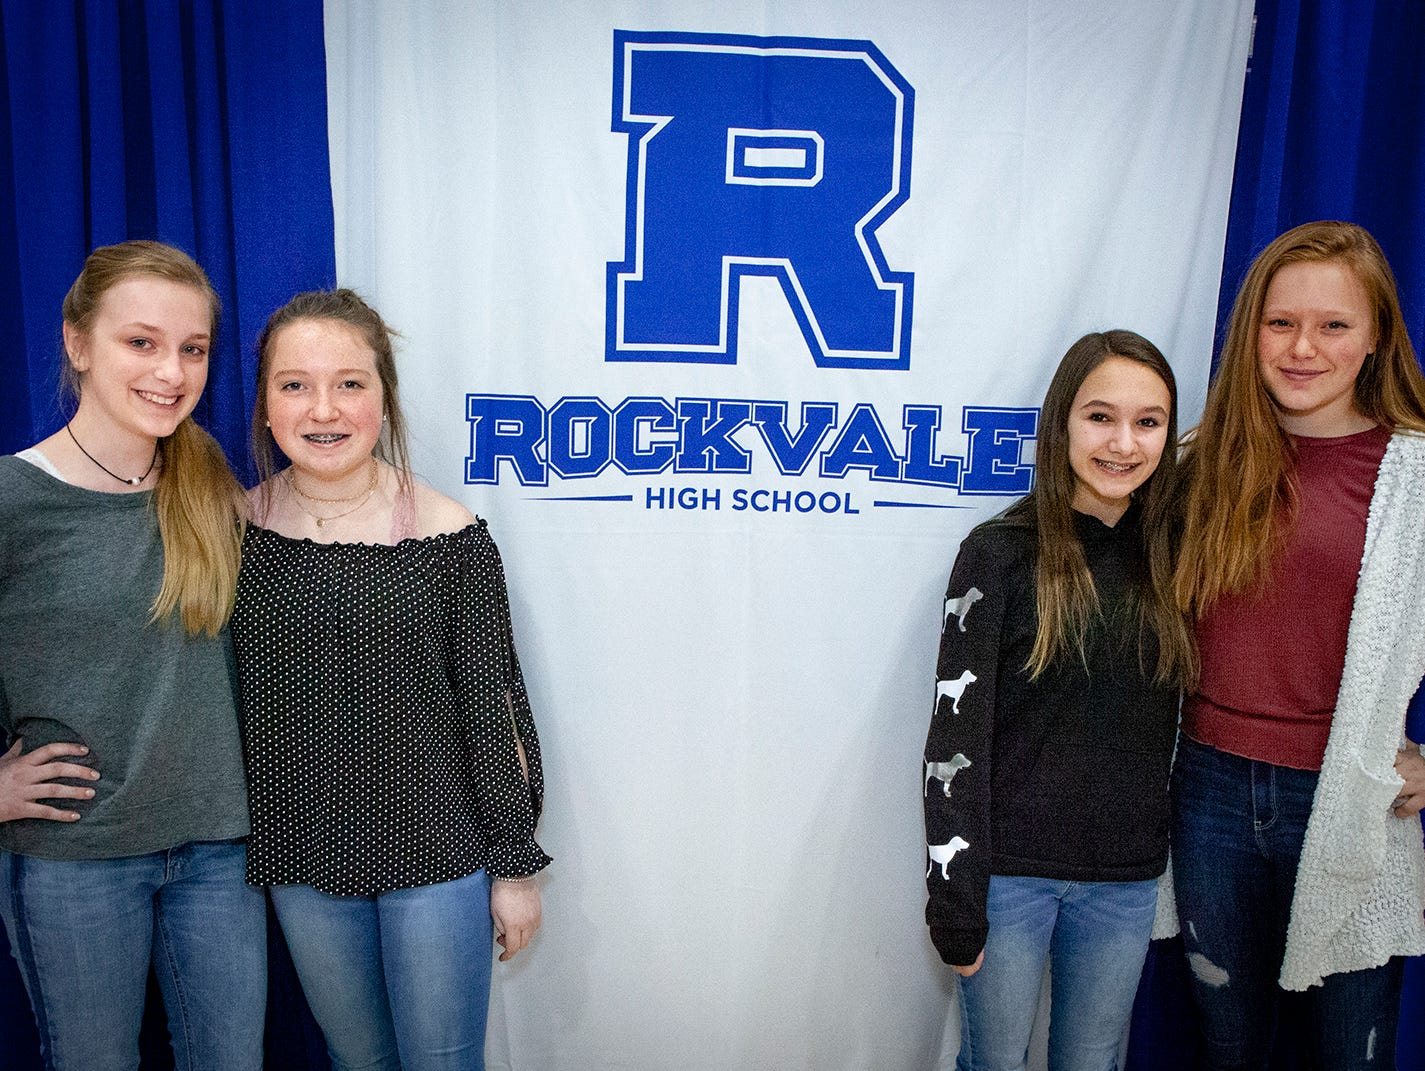 This foursome of incoming Rockvale High School freshmen have been friends since kindergarten and will be reunited when the school opens in fall 2019. From left, Calista Phinney, Caiah Nicholson, Sammie Brannon and Jessie Condren.